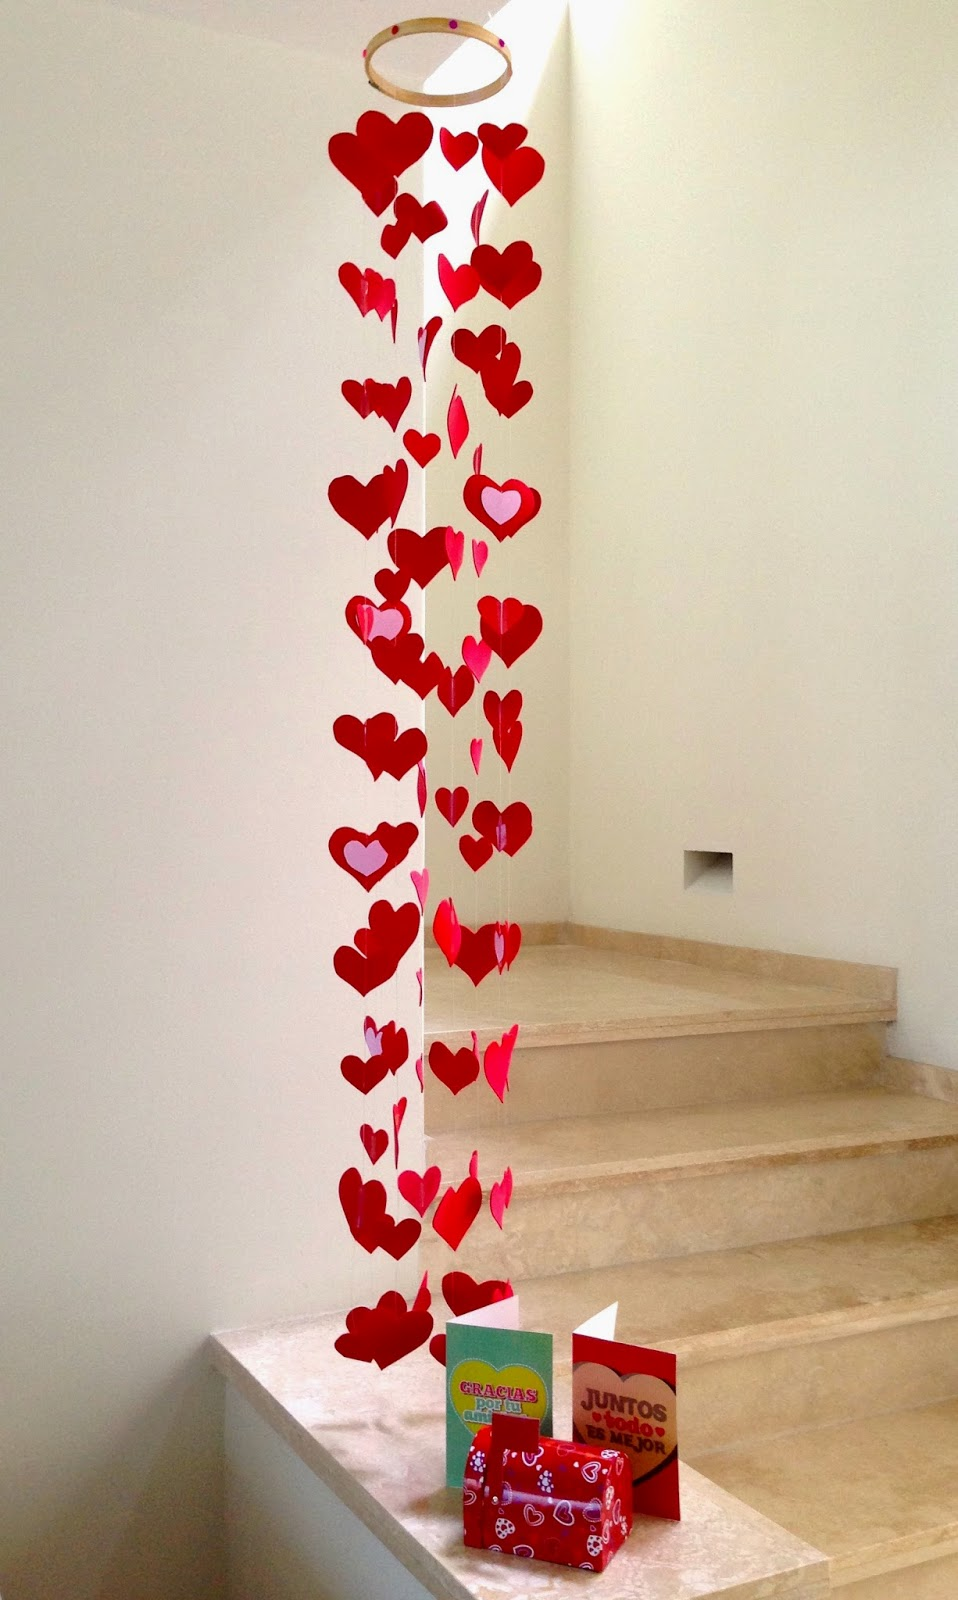 Casa eglys decoraci n deco tour san valentin 2015 for Decoracion para pared san valentin